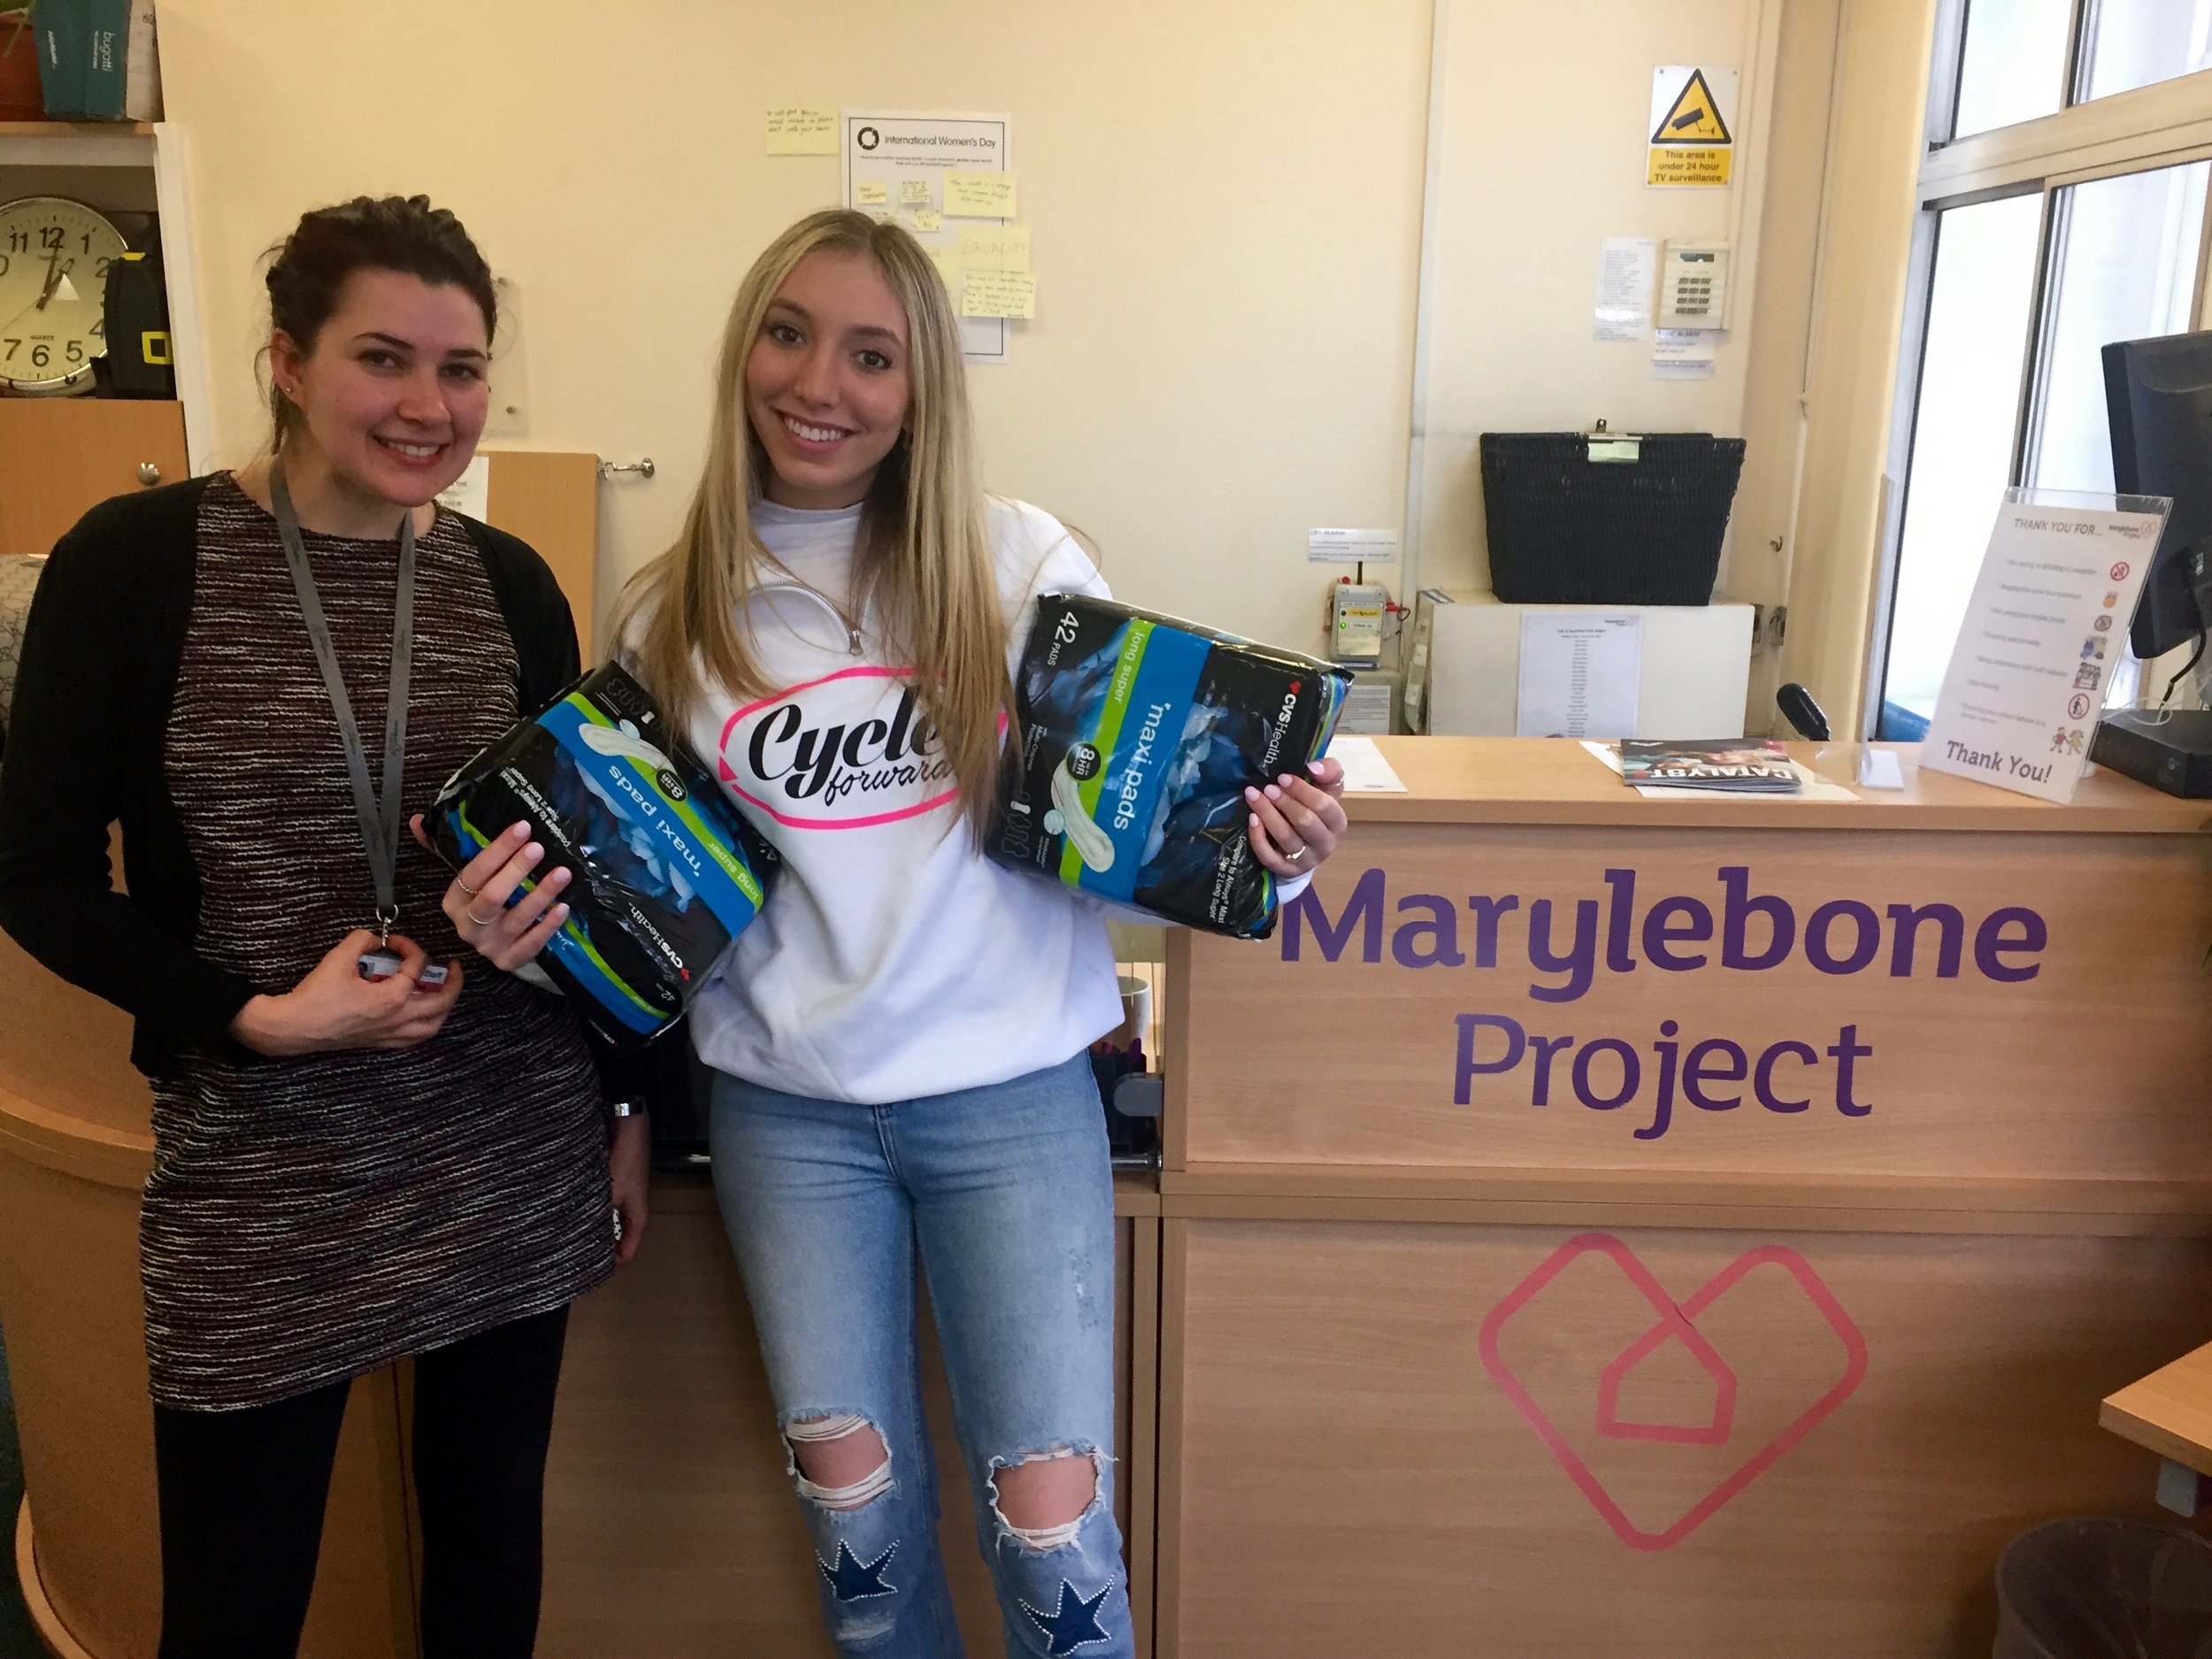 Sophie with a donation at the Marylebone Project in London.